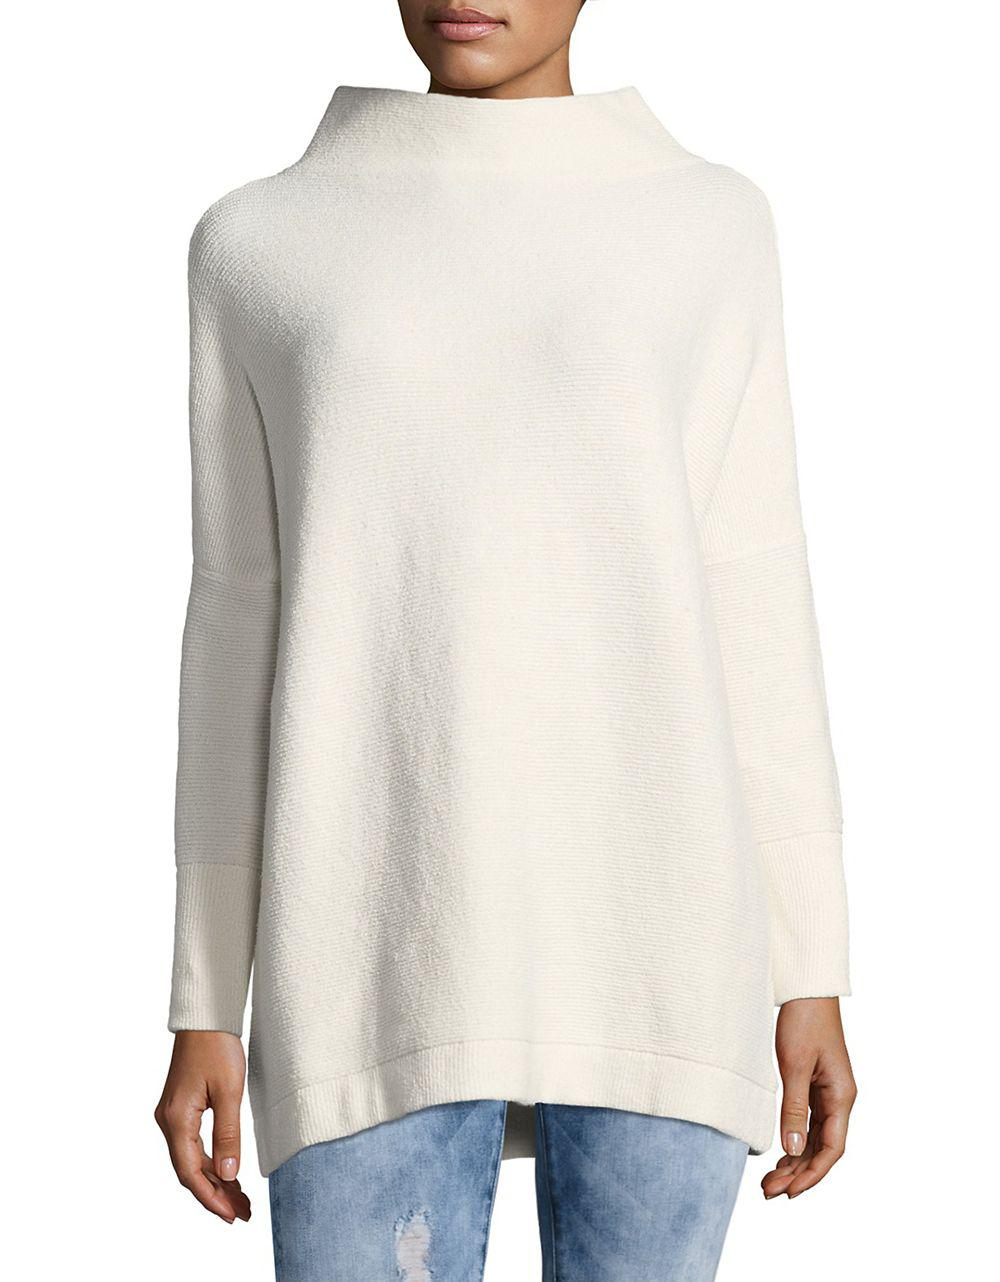 Free people Ottoman Slouchy Tunic Sweater in White | Lyst